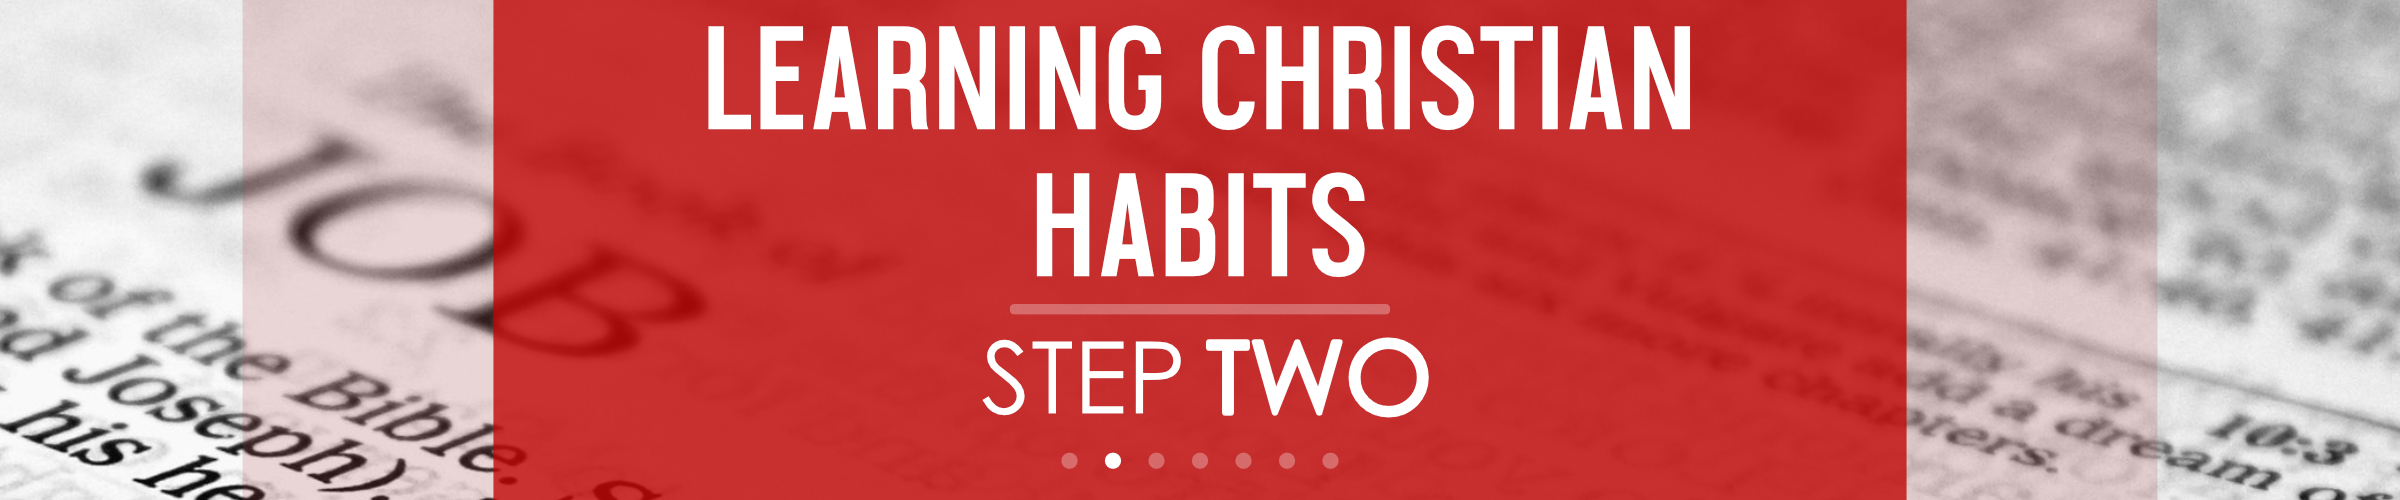 Learning Christian Habits - Step Two.jpg